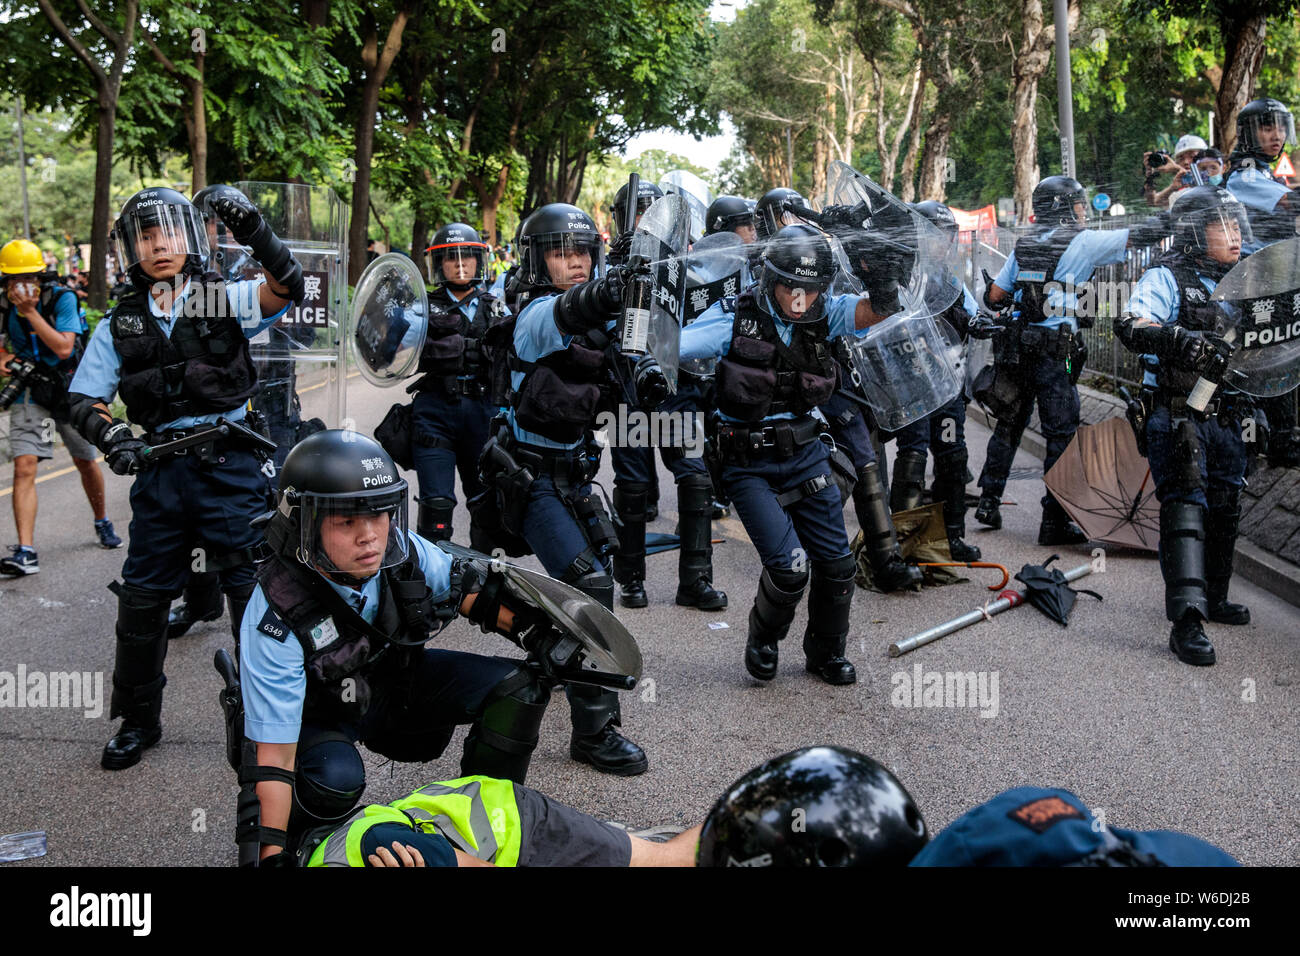 Police officers in riot gear clash with protesters during